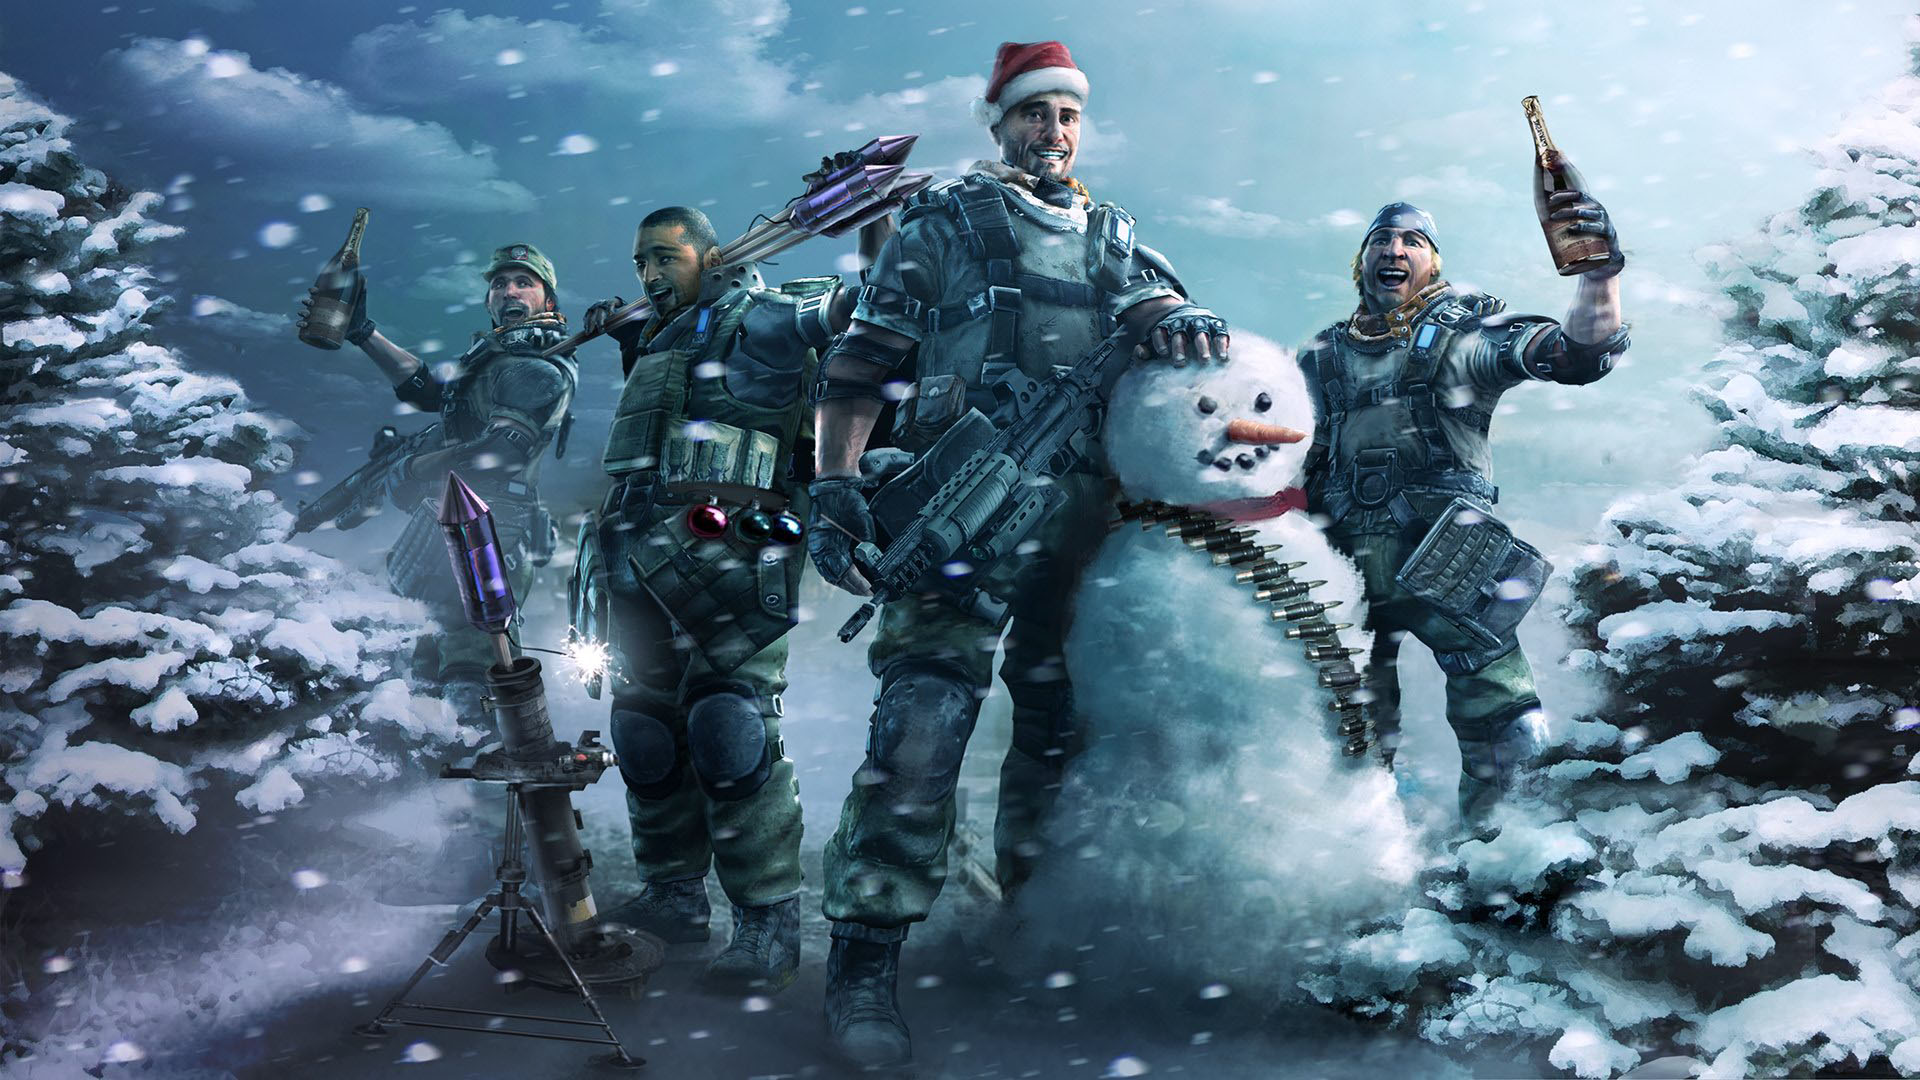 Top 10 PC Games to Play on Christmas Killzone Christmas party